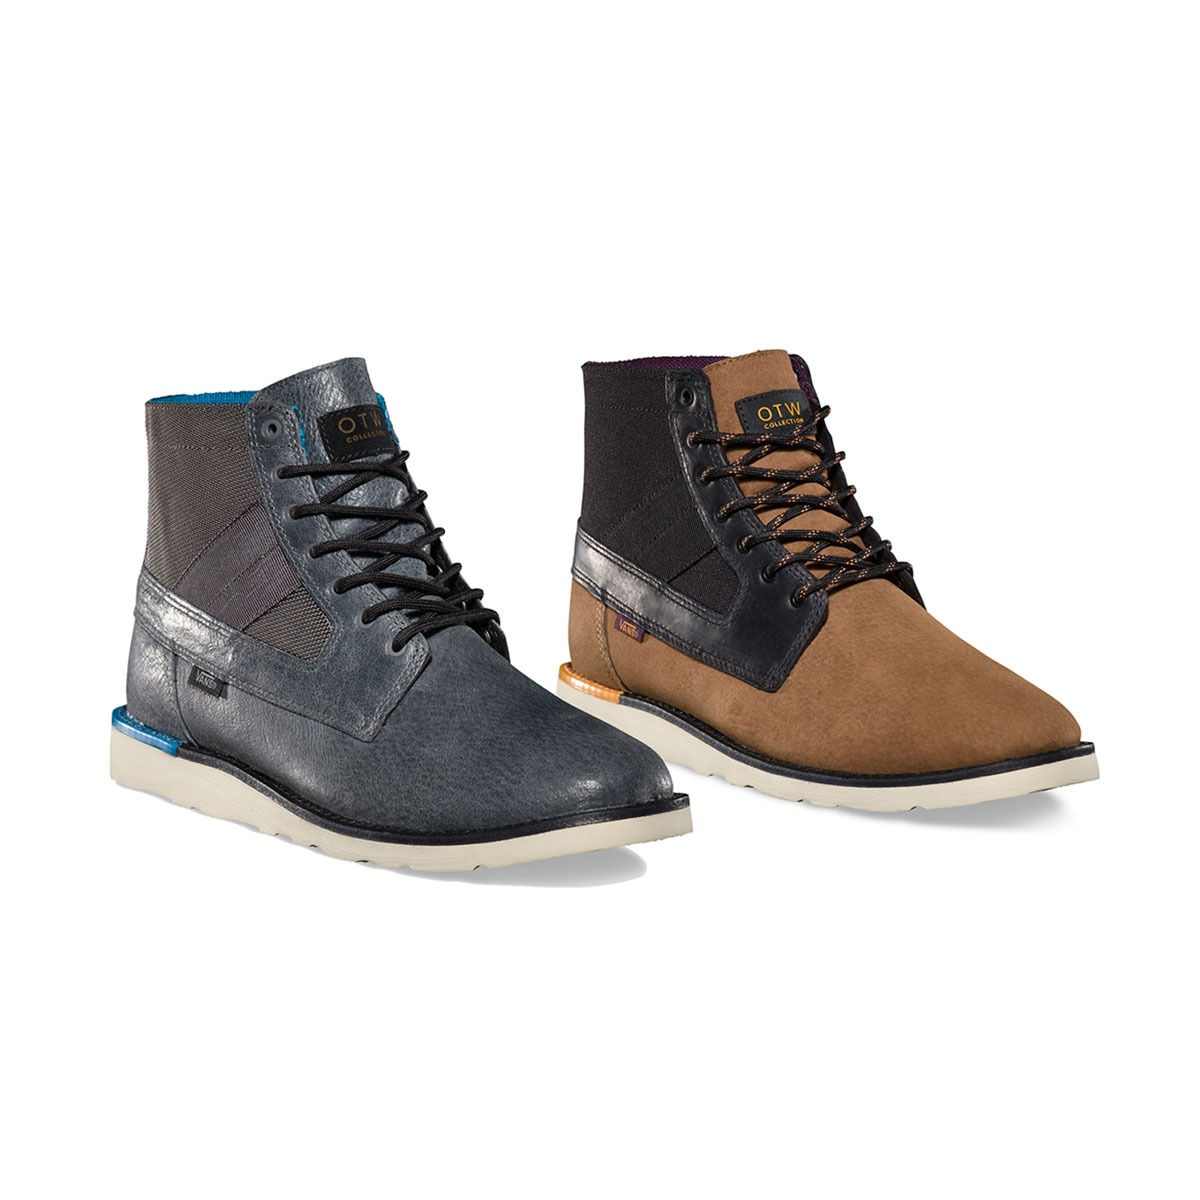 Vans OTW Collection Breton Boots Fall 2013